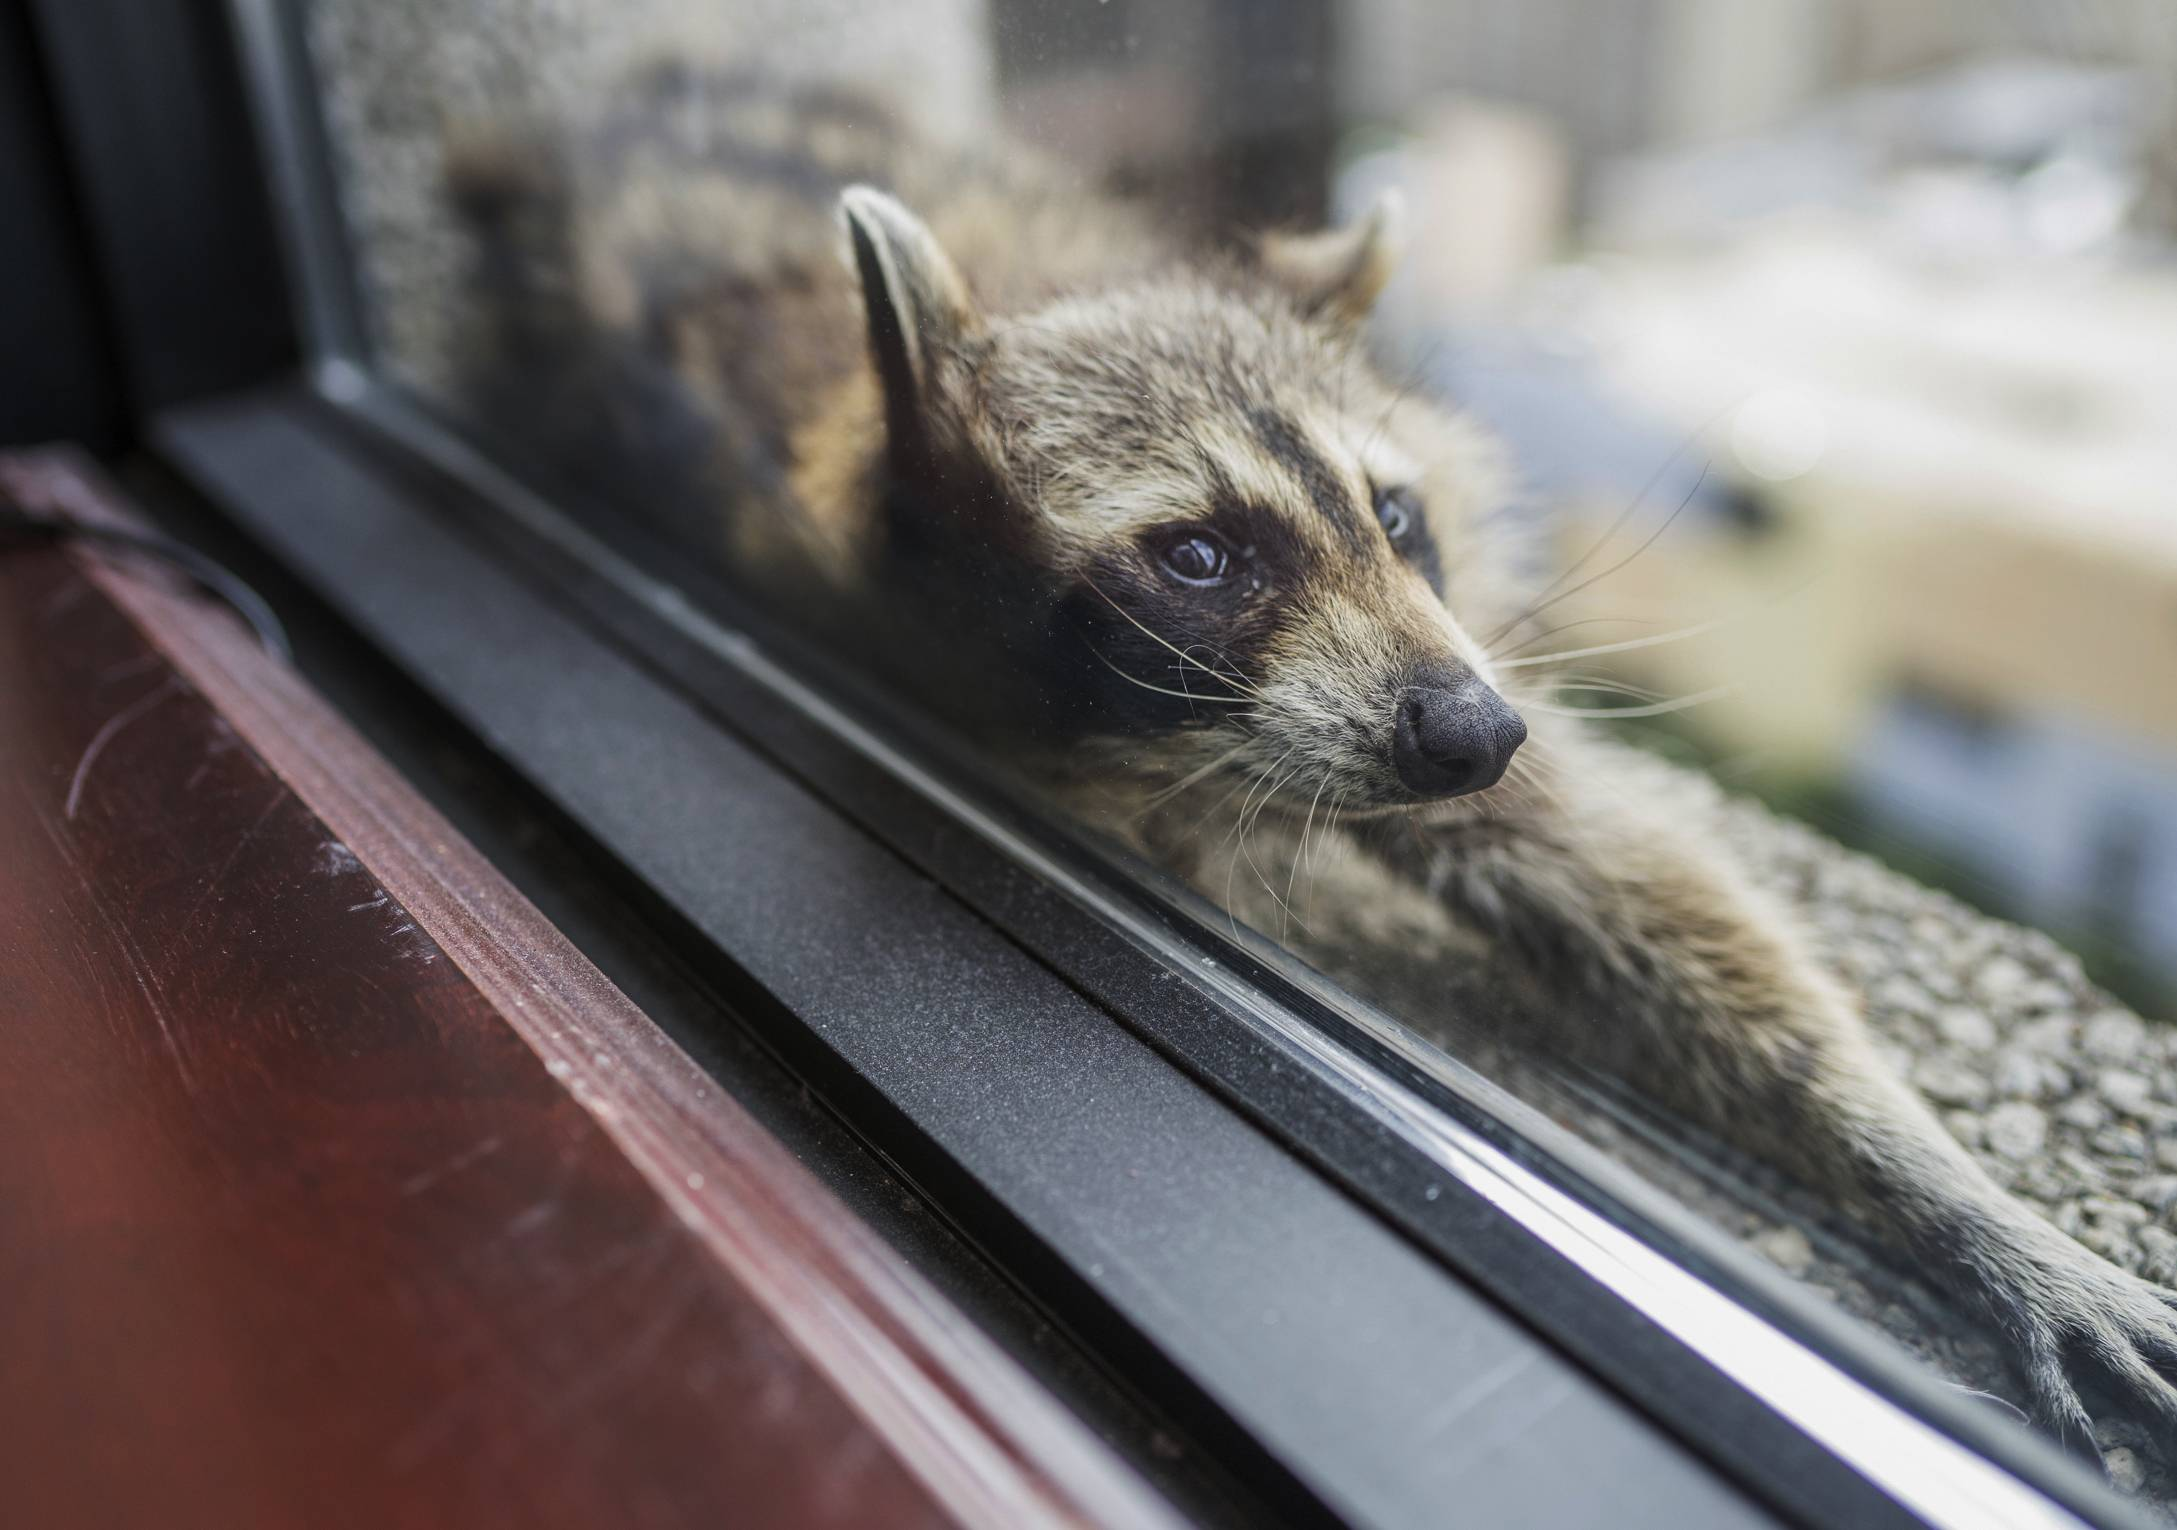 A raccoon stretches out Tuesday on a windowsill high above downtown St. Paul, Minnesota. The raccoon stranded on the ledge of a building in St. Paul captivated onlookers and generated interest on social media after it started scaling an office building.